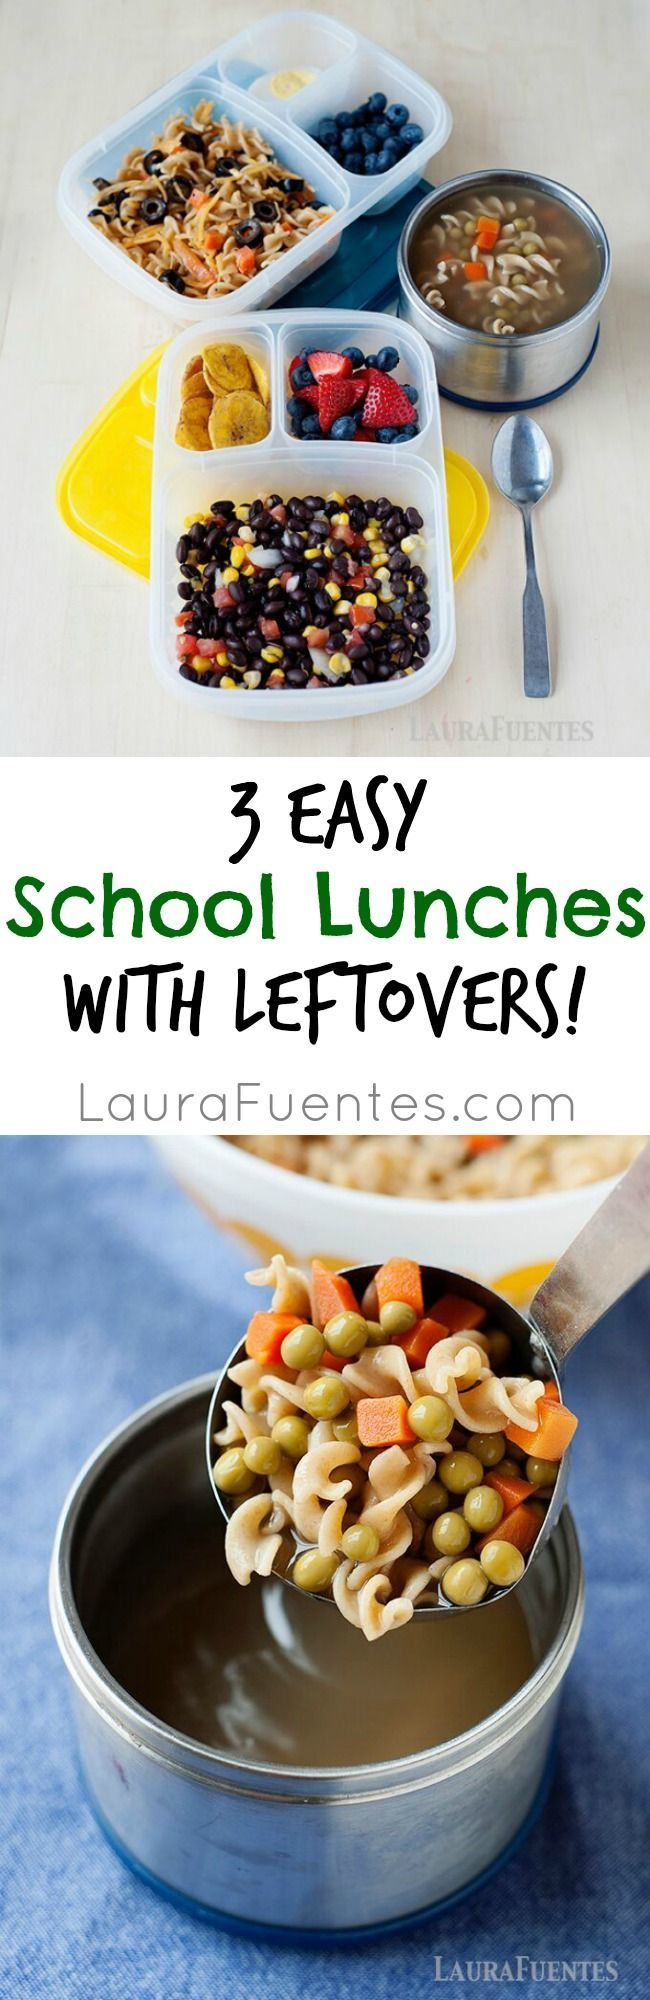 572 best office lunch images on pinterest health snacks healthy easy lunches made with leftovers perfect for back to school and the office forumfinder Gallery